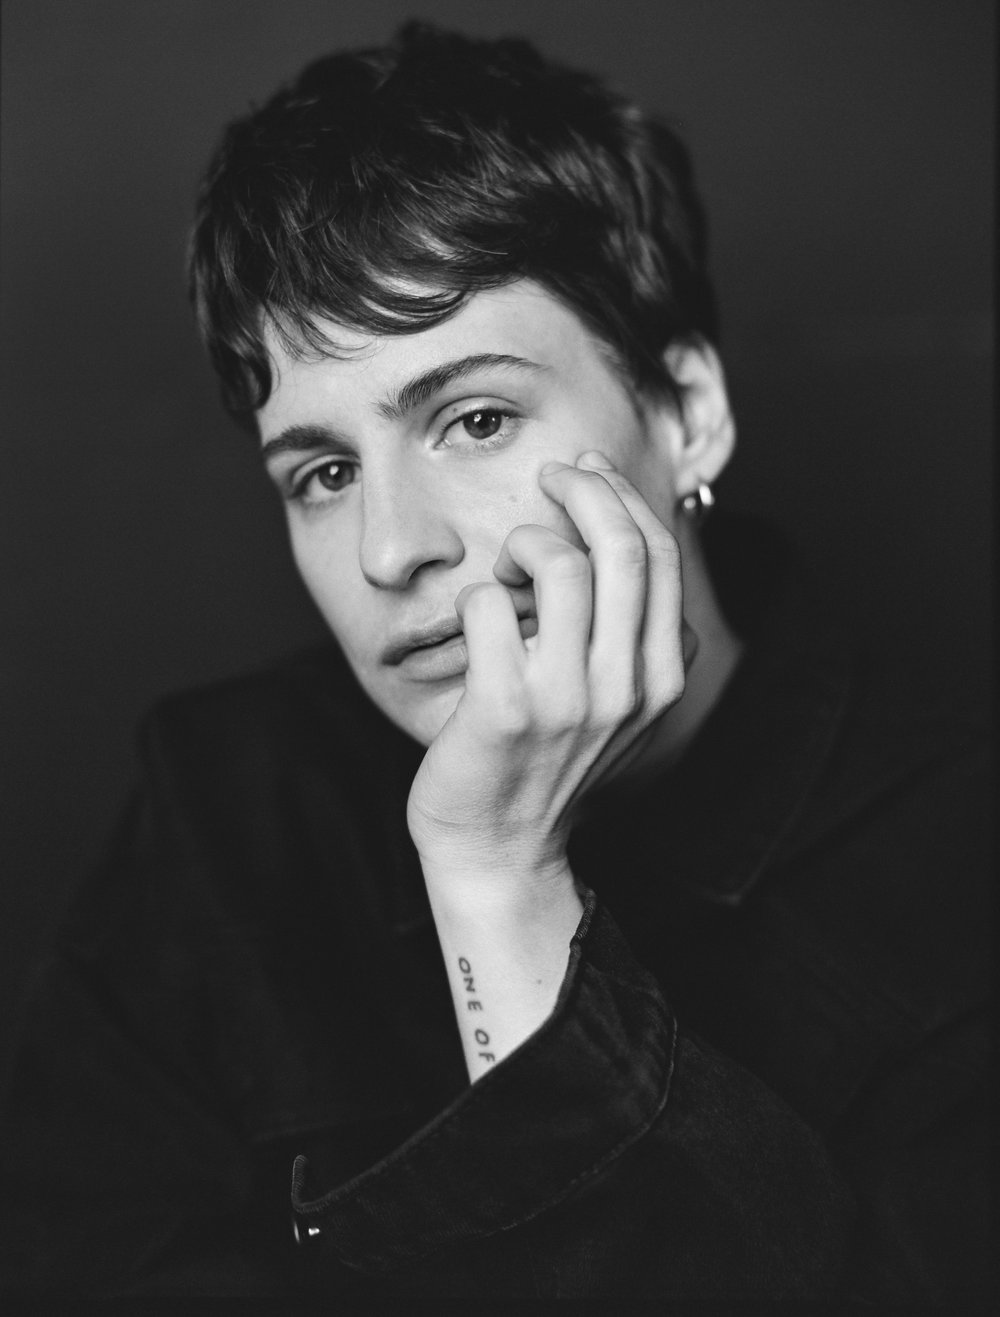 Christine & The Queens Photographed by Heather Hazzan for V Magazine